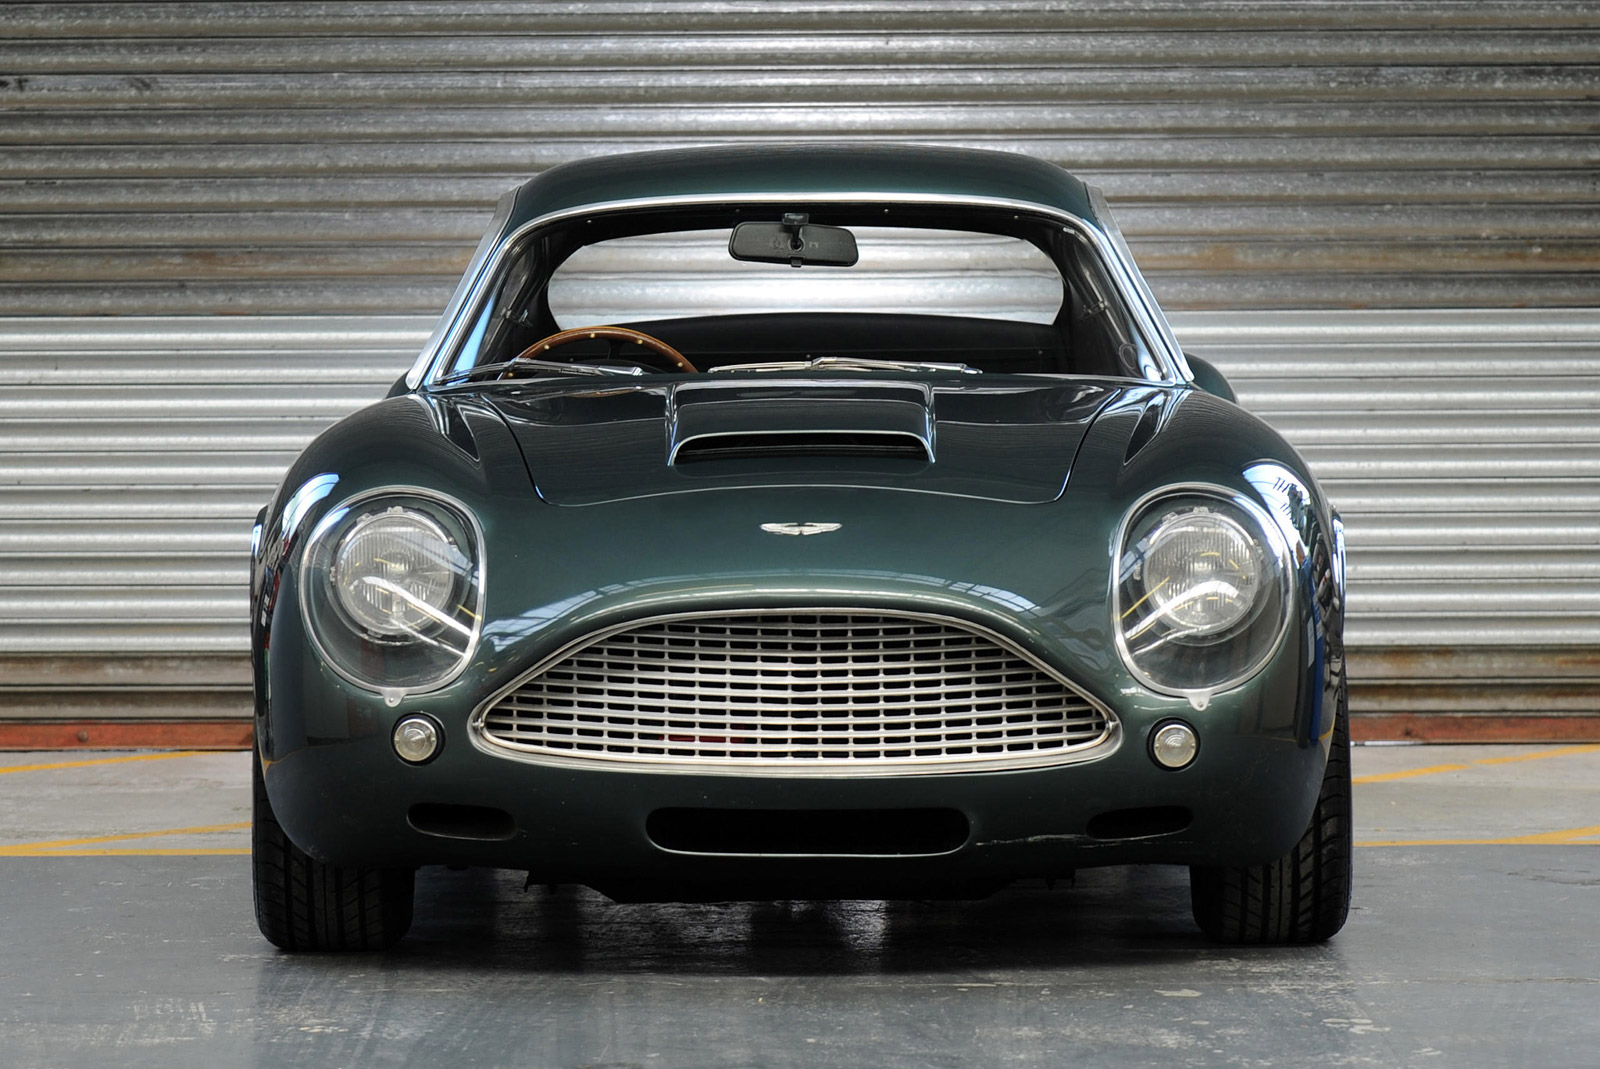 Rare Aston Martin Db4 Gt Zagato Sells For 1 9 Million